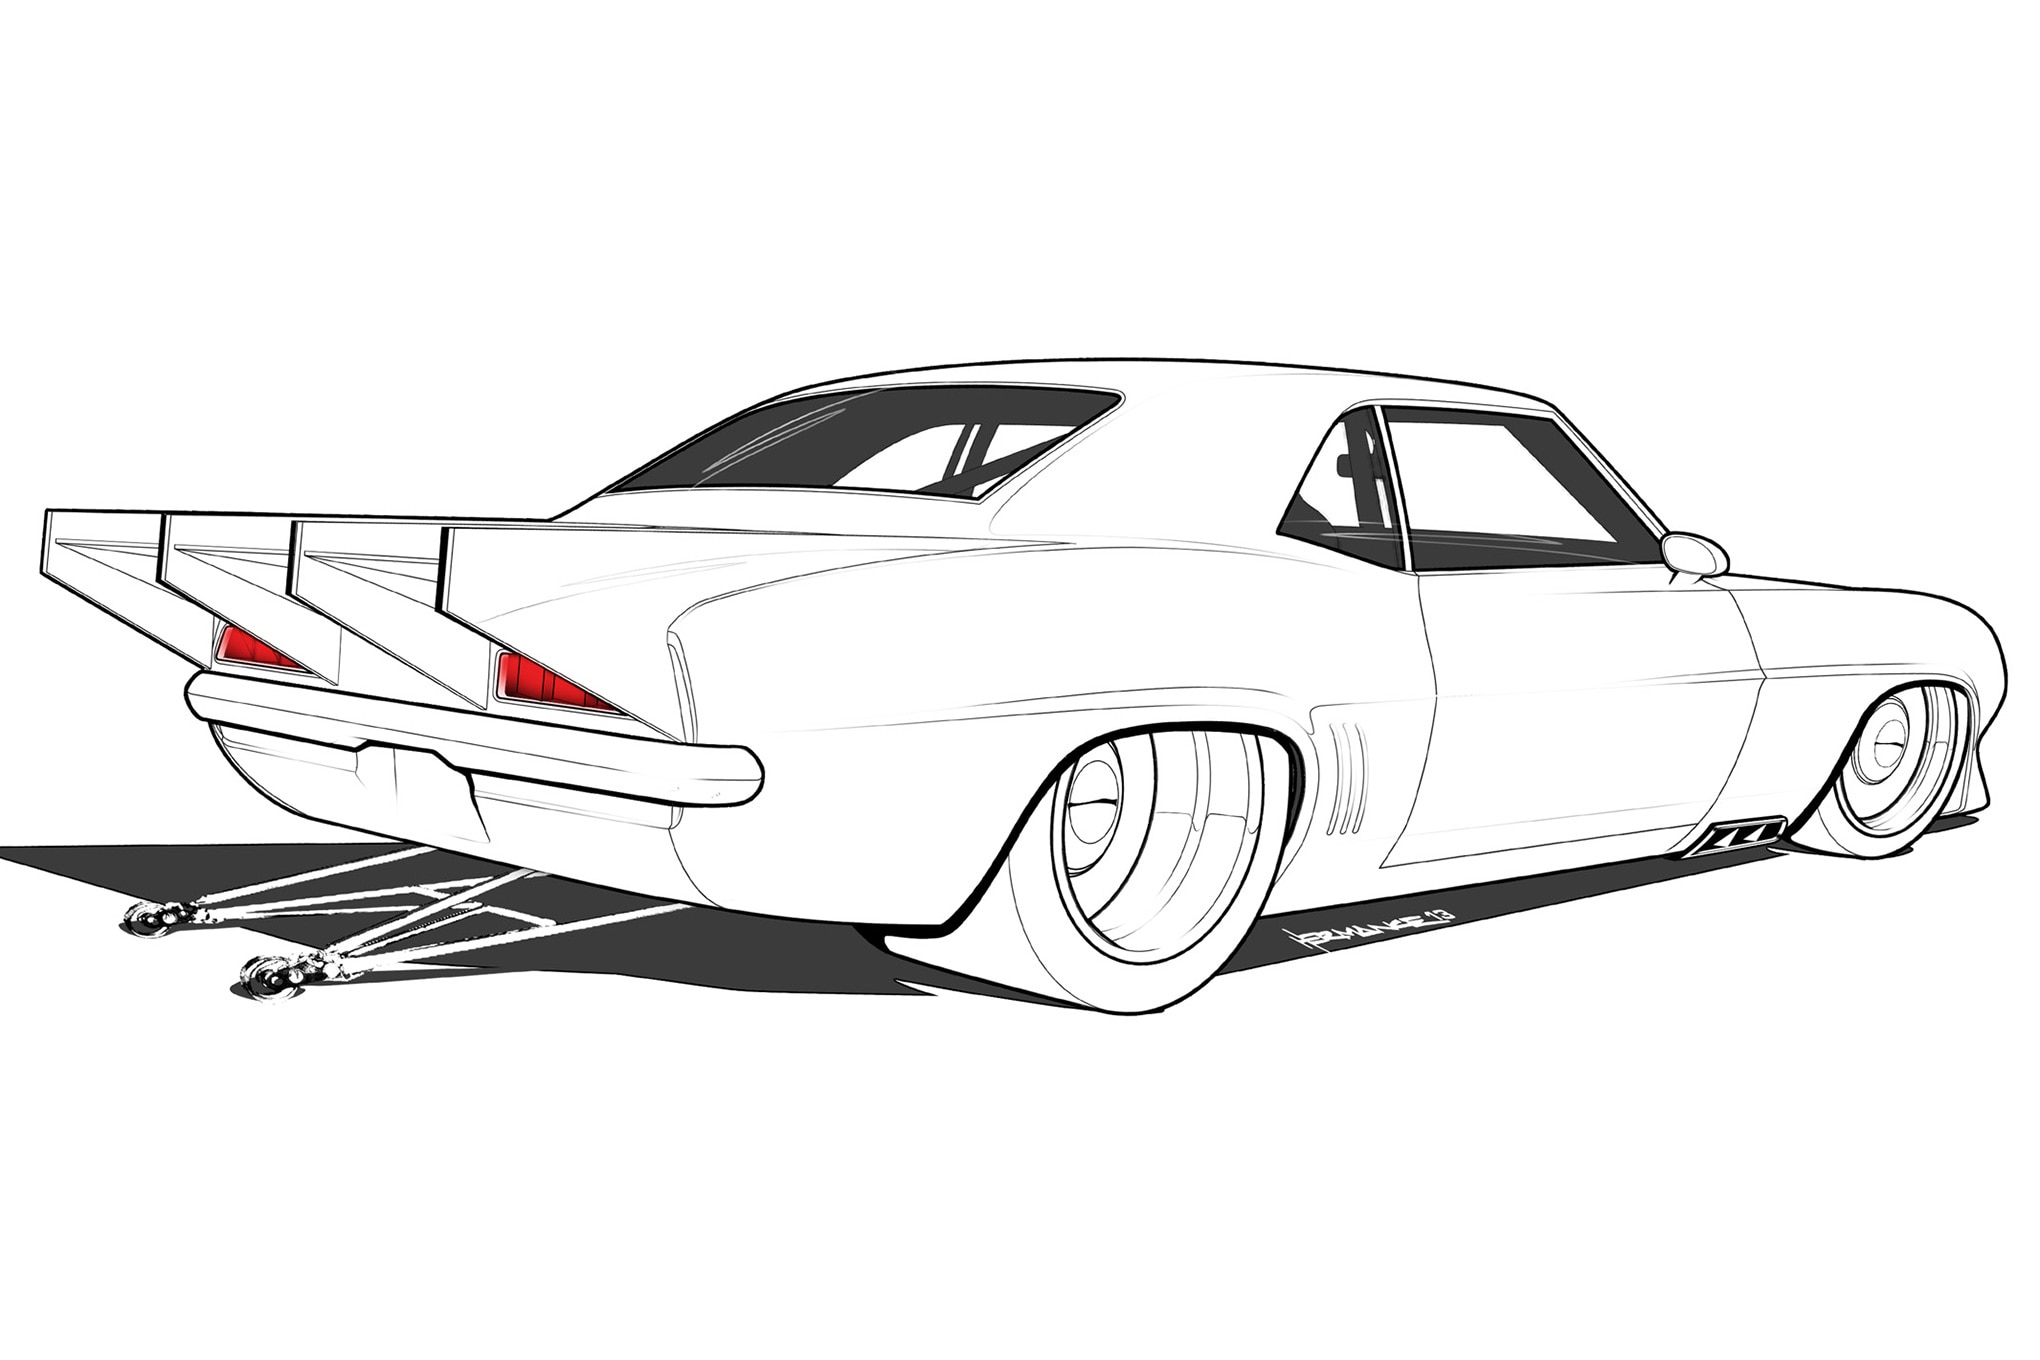 12 Design Concepts For A New Generation Of Pro Street